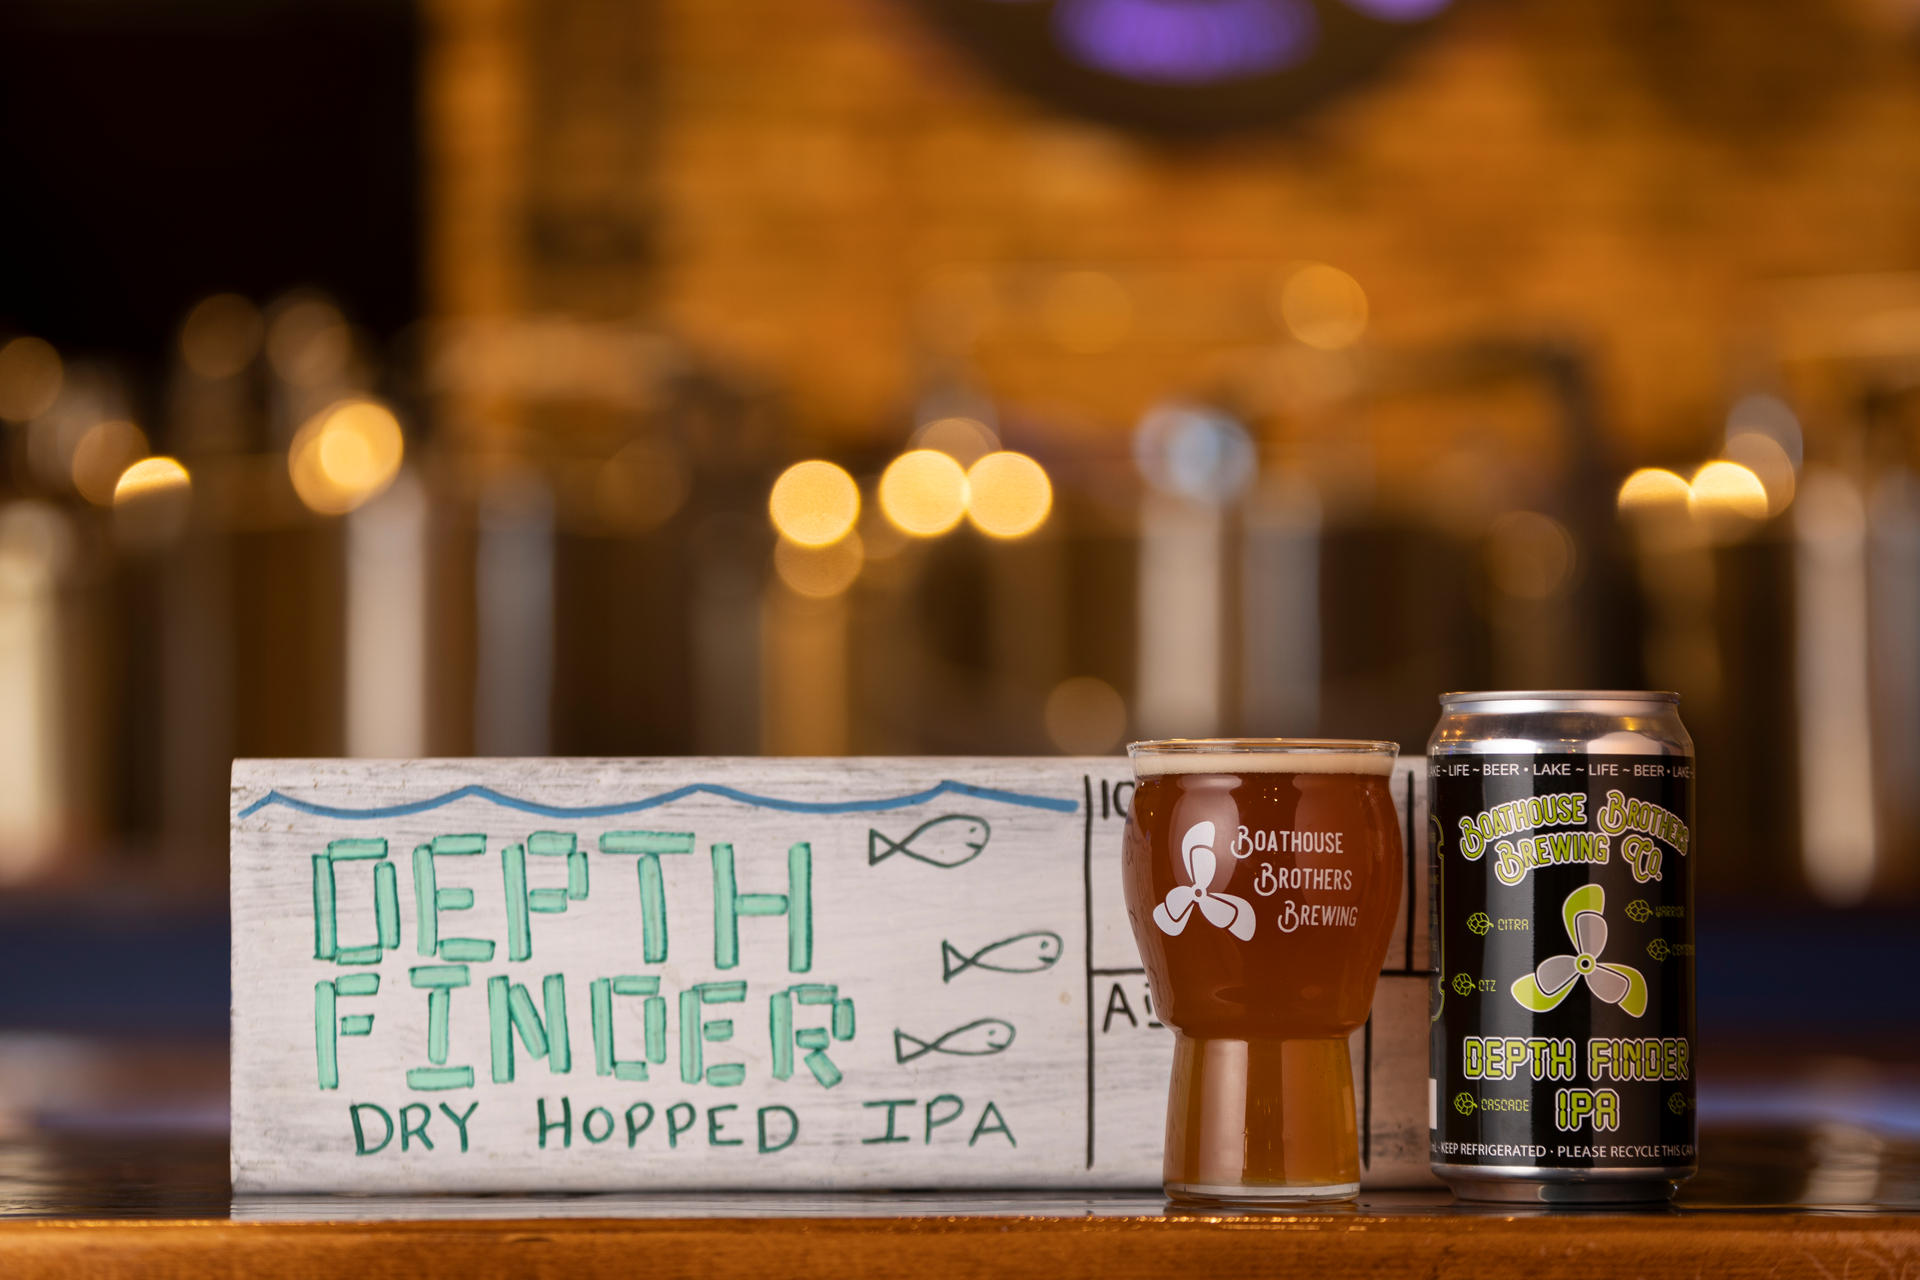 Depth Finder - Dry Hopped IPA